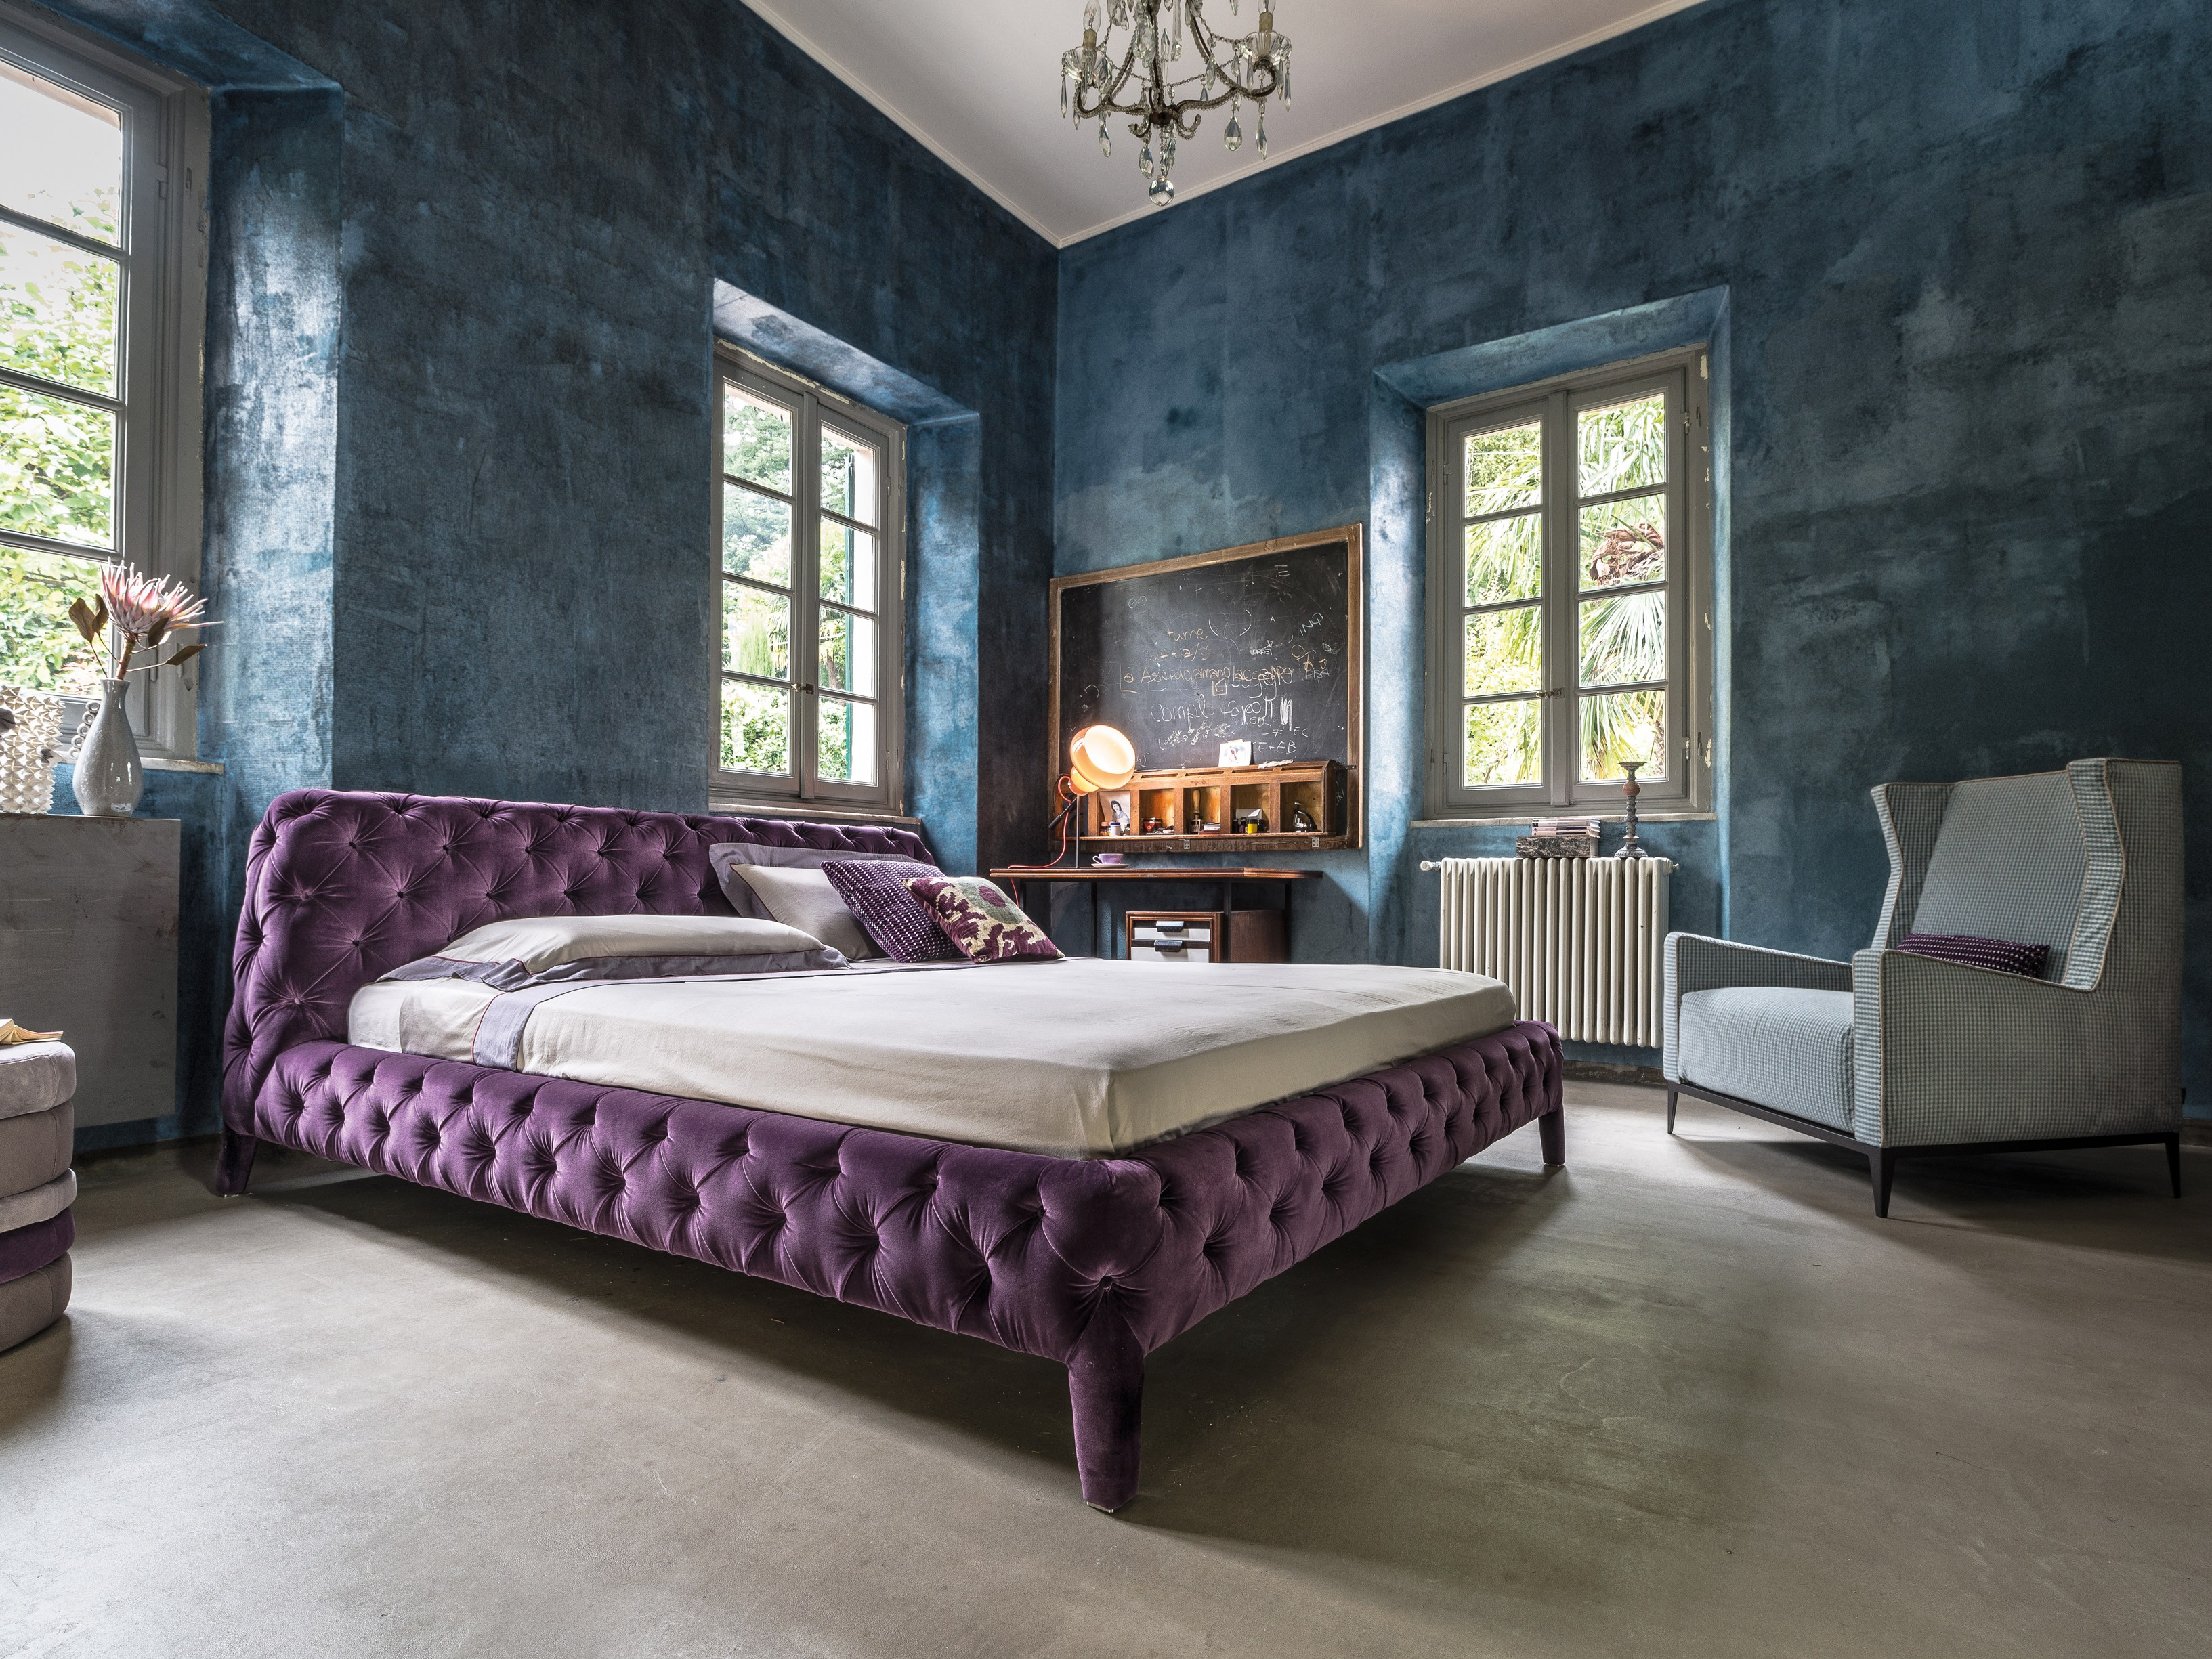 Double Bed With Tufted Headboard WINDSOR DREAM By Arketipo Design Studio  Memo